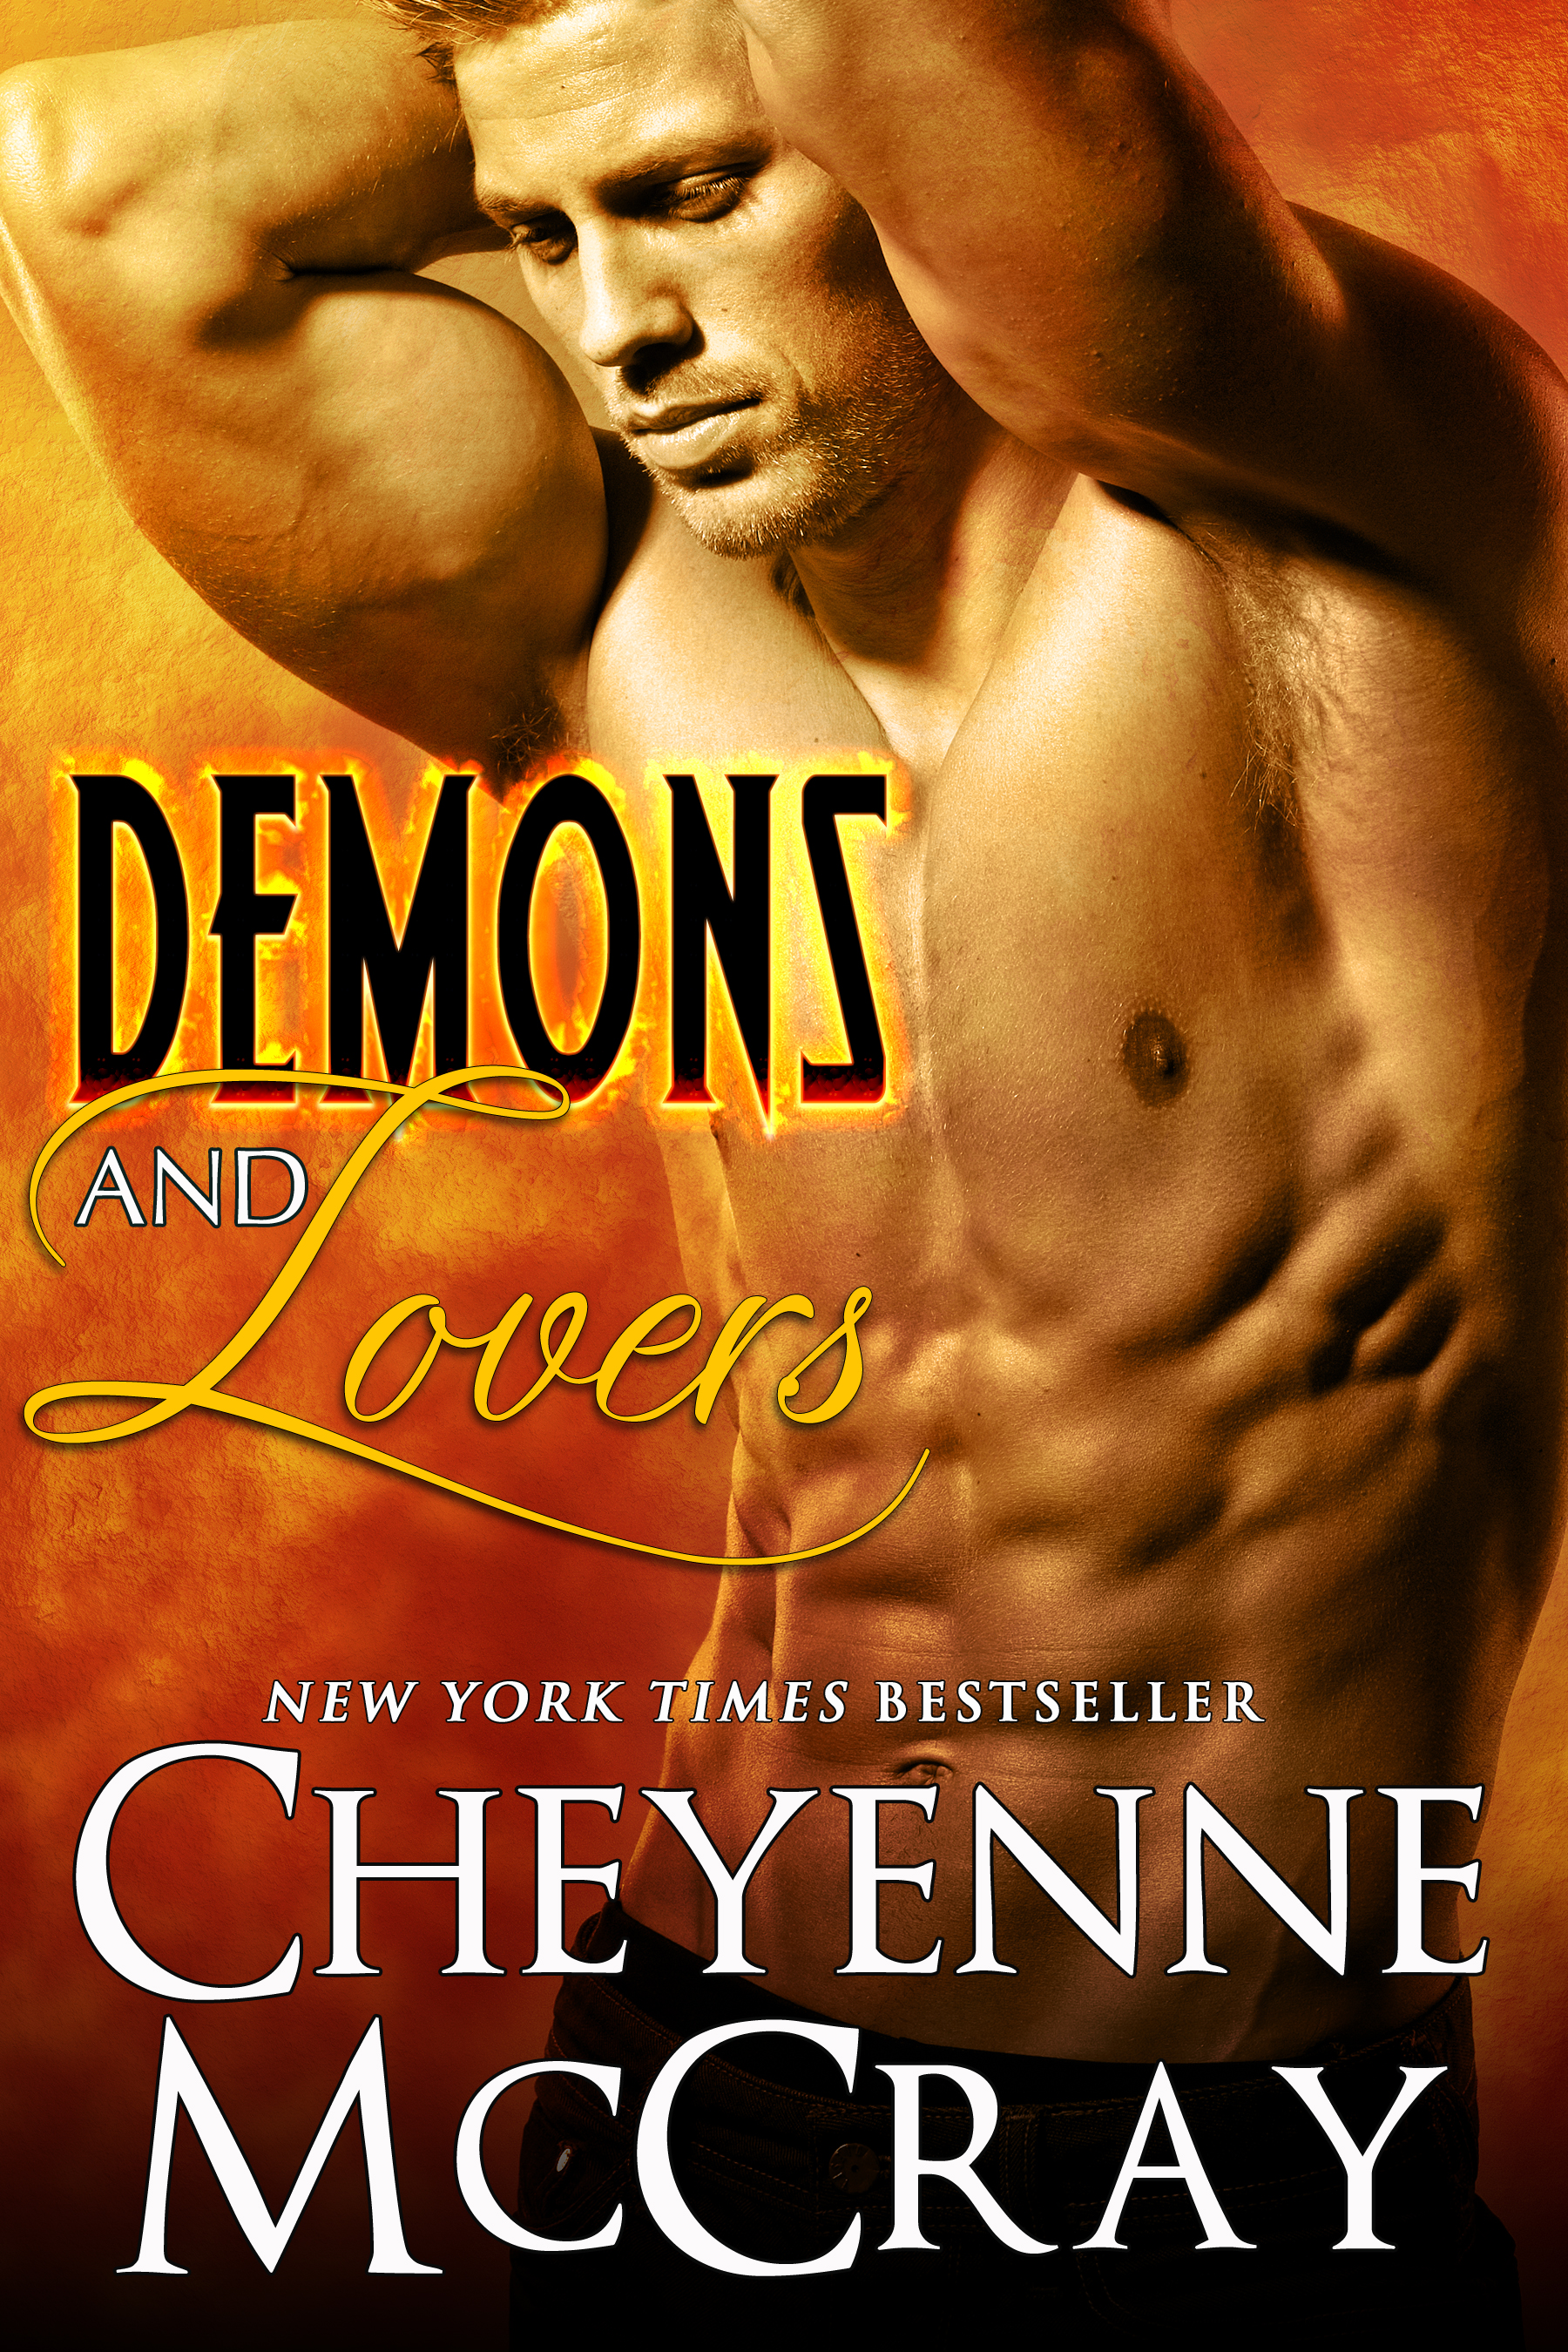 fiction and demon lover Browse through and read thousands of demon love fiction stories and books (book 6) kaiden, a teen-demon who is titled by the devil himself as his best soul catcher, hunting down untainted angels to extract their souls and xoom, his best friend, and possibly lover, didn't want to do it, but she had to.